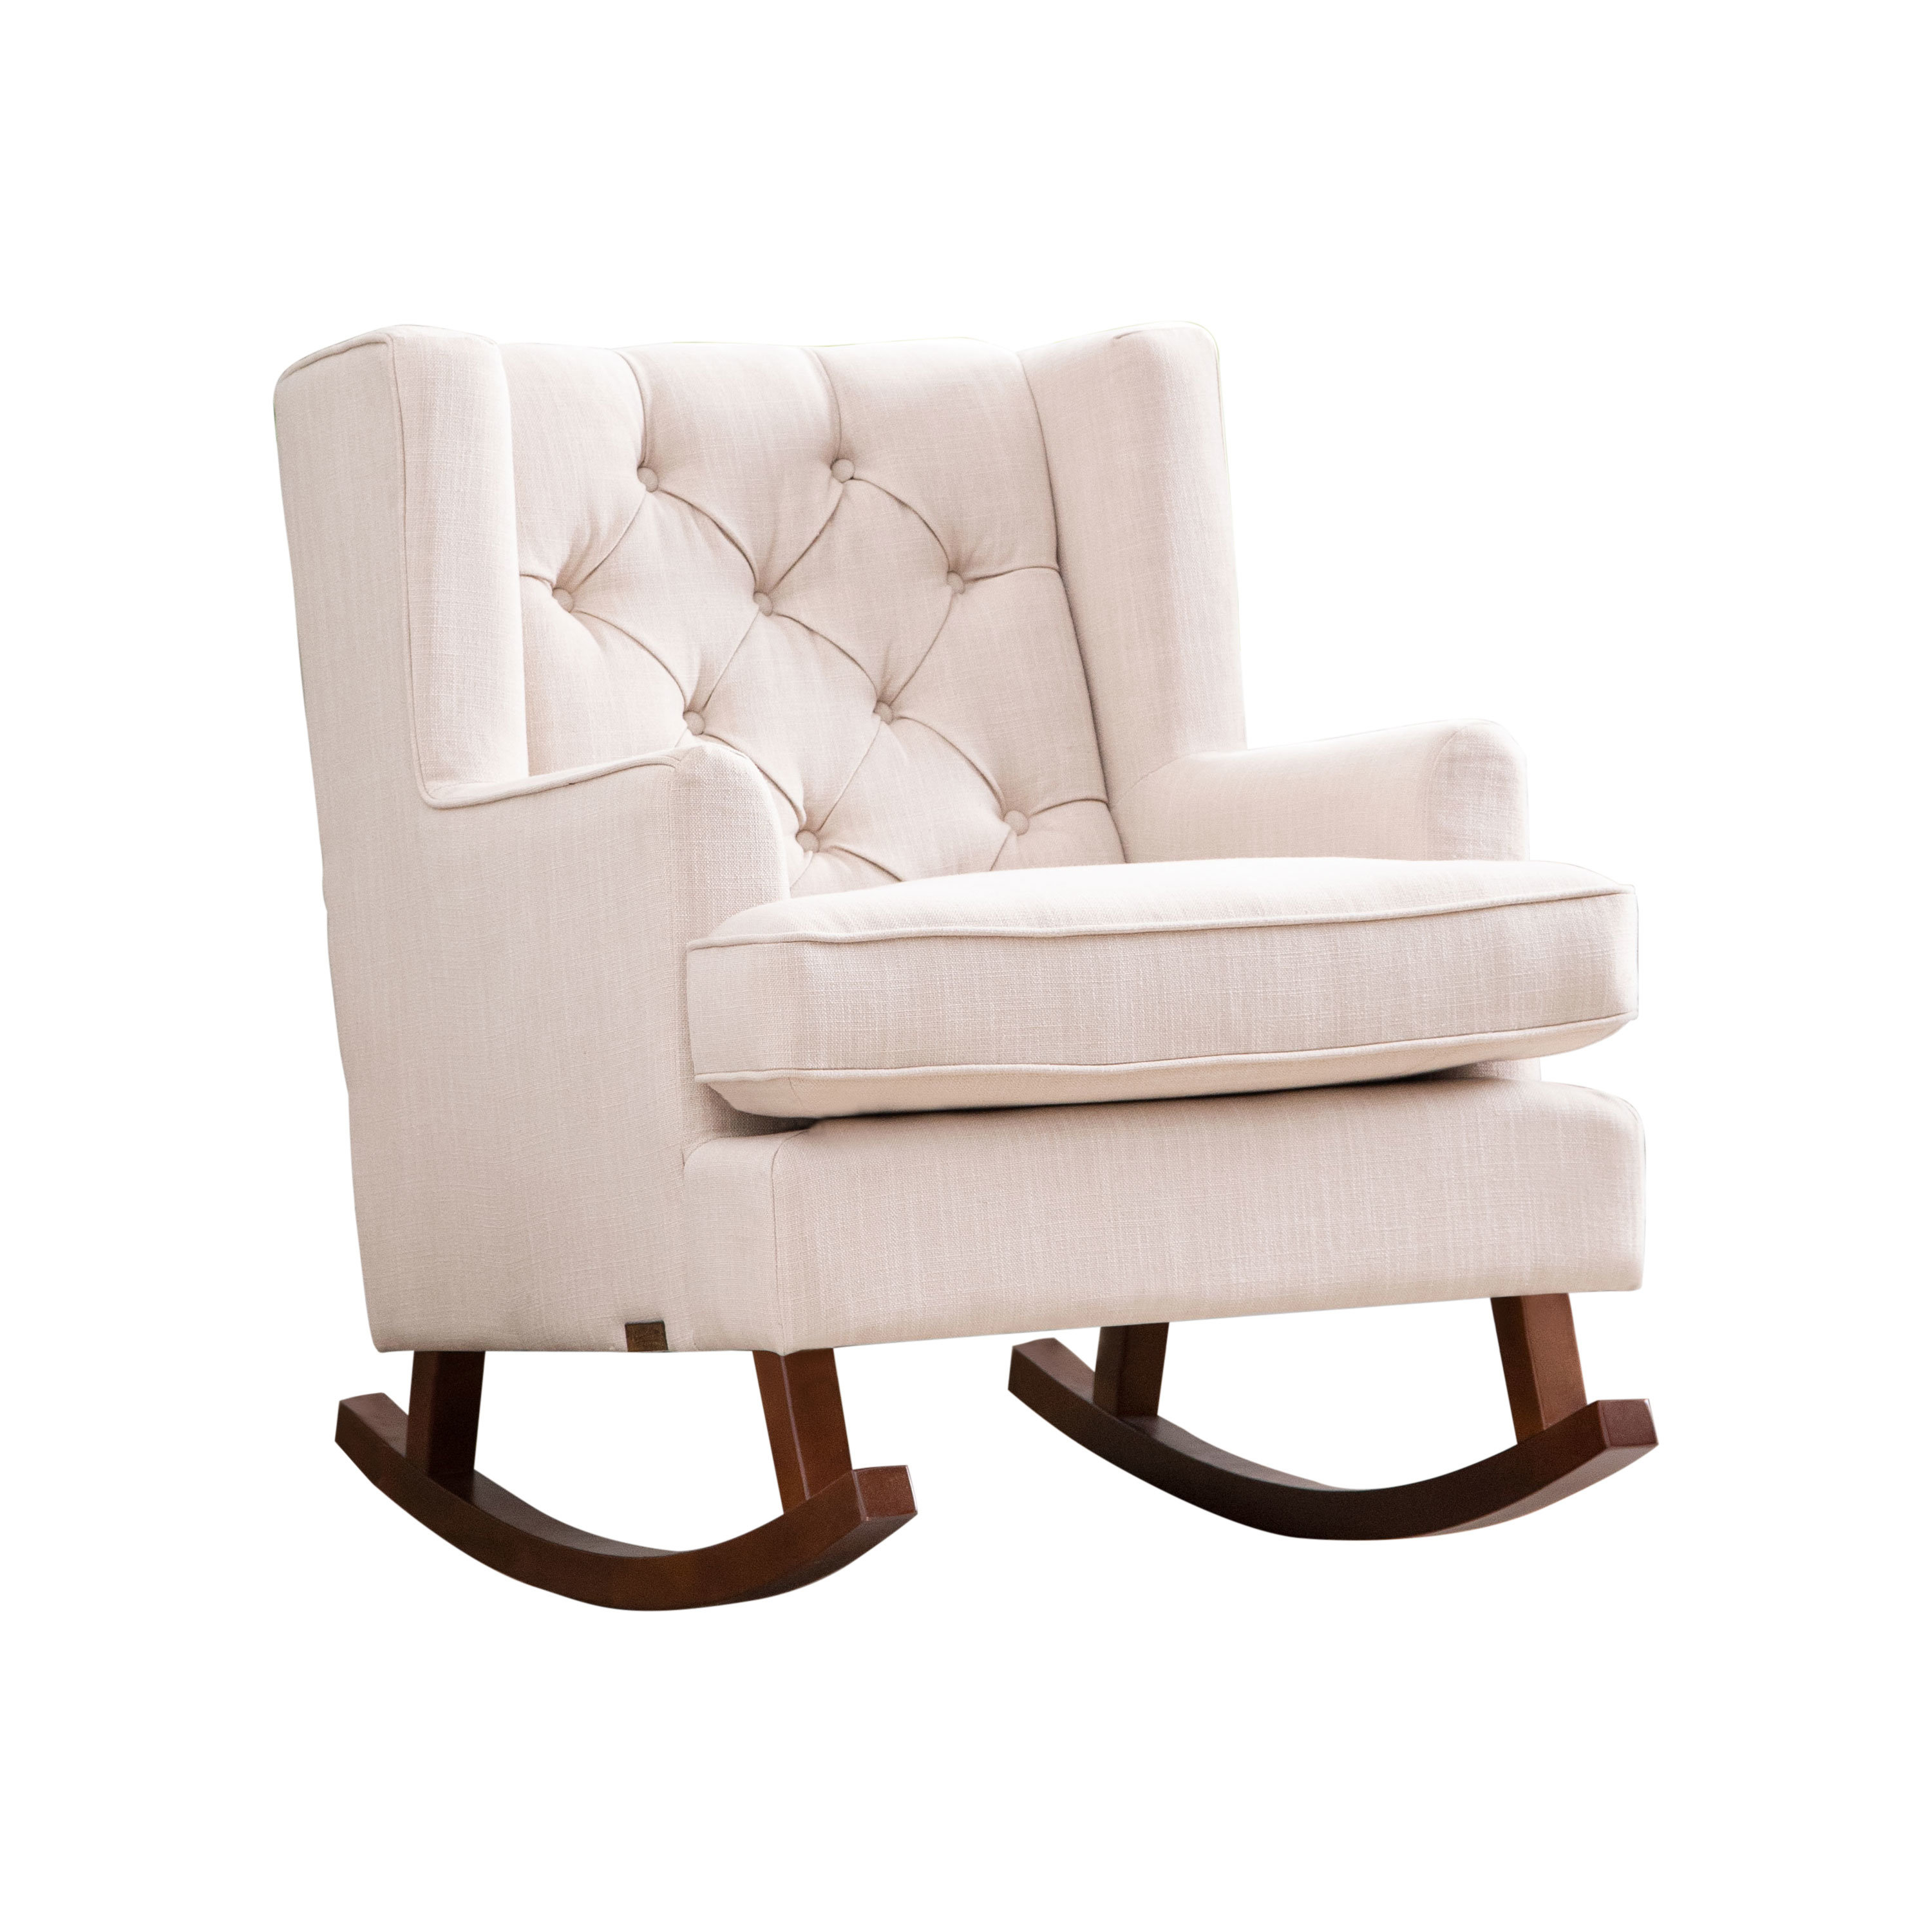 Abree Rocking Chair In Rocking Chairs In Linen Fabric With Medium Espresso Base (View 8 of 20)